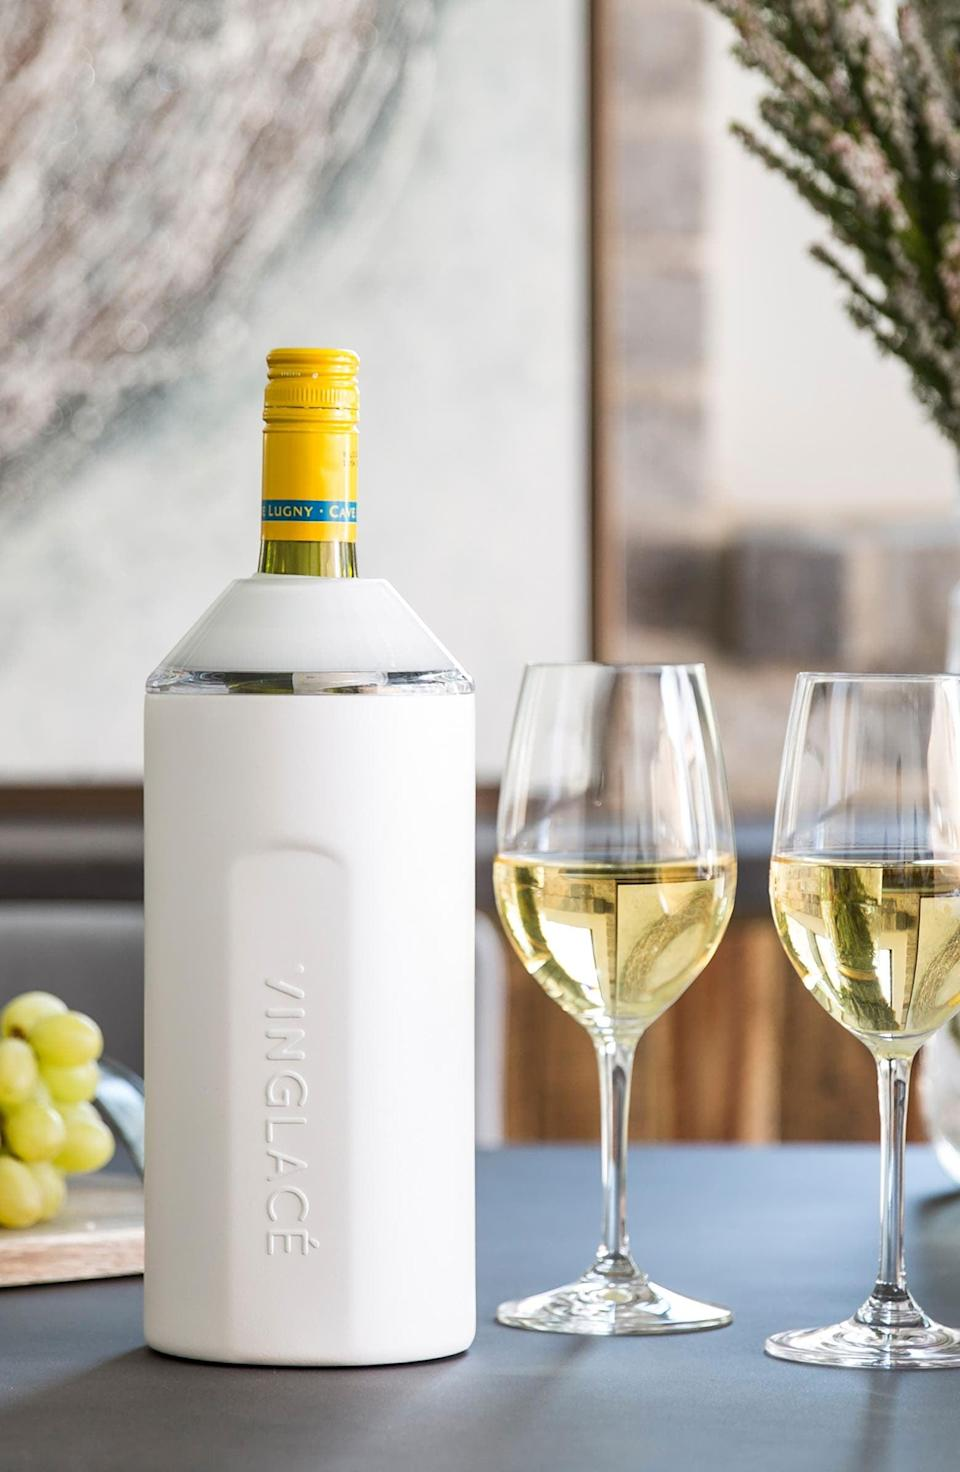 <p>Keep all their wine cold and crisp with this <span>Vinglace Wine Chiller</span> ($90).</p>